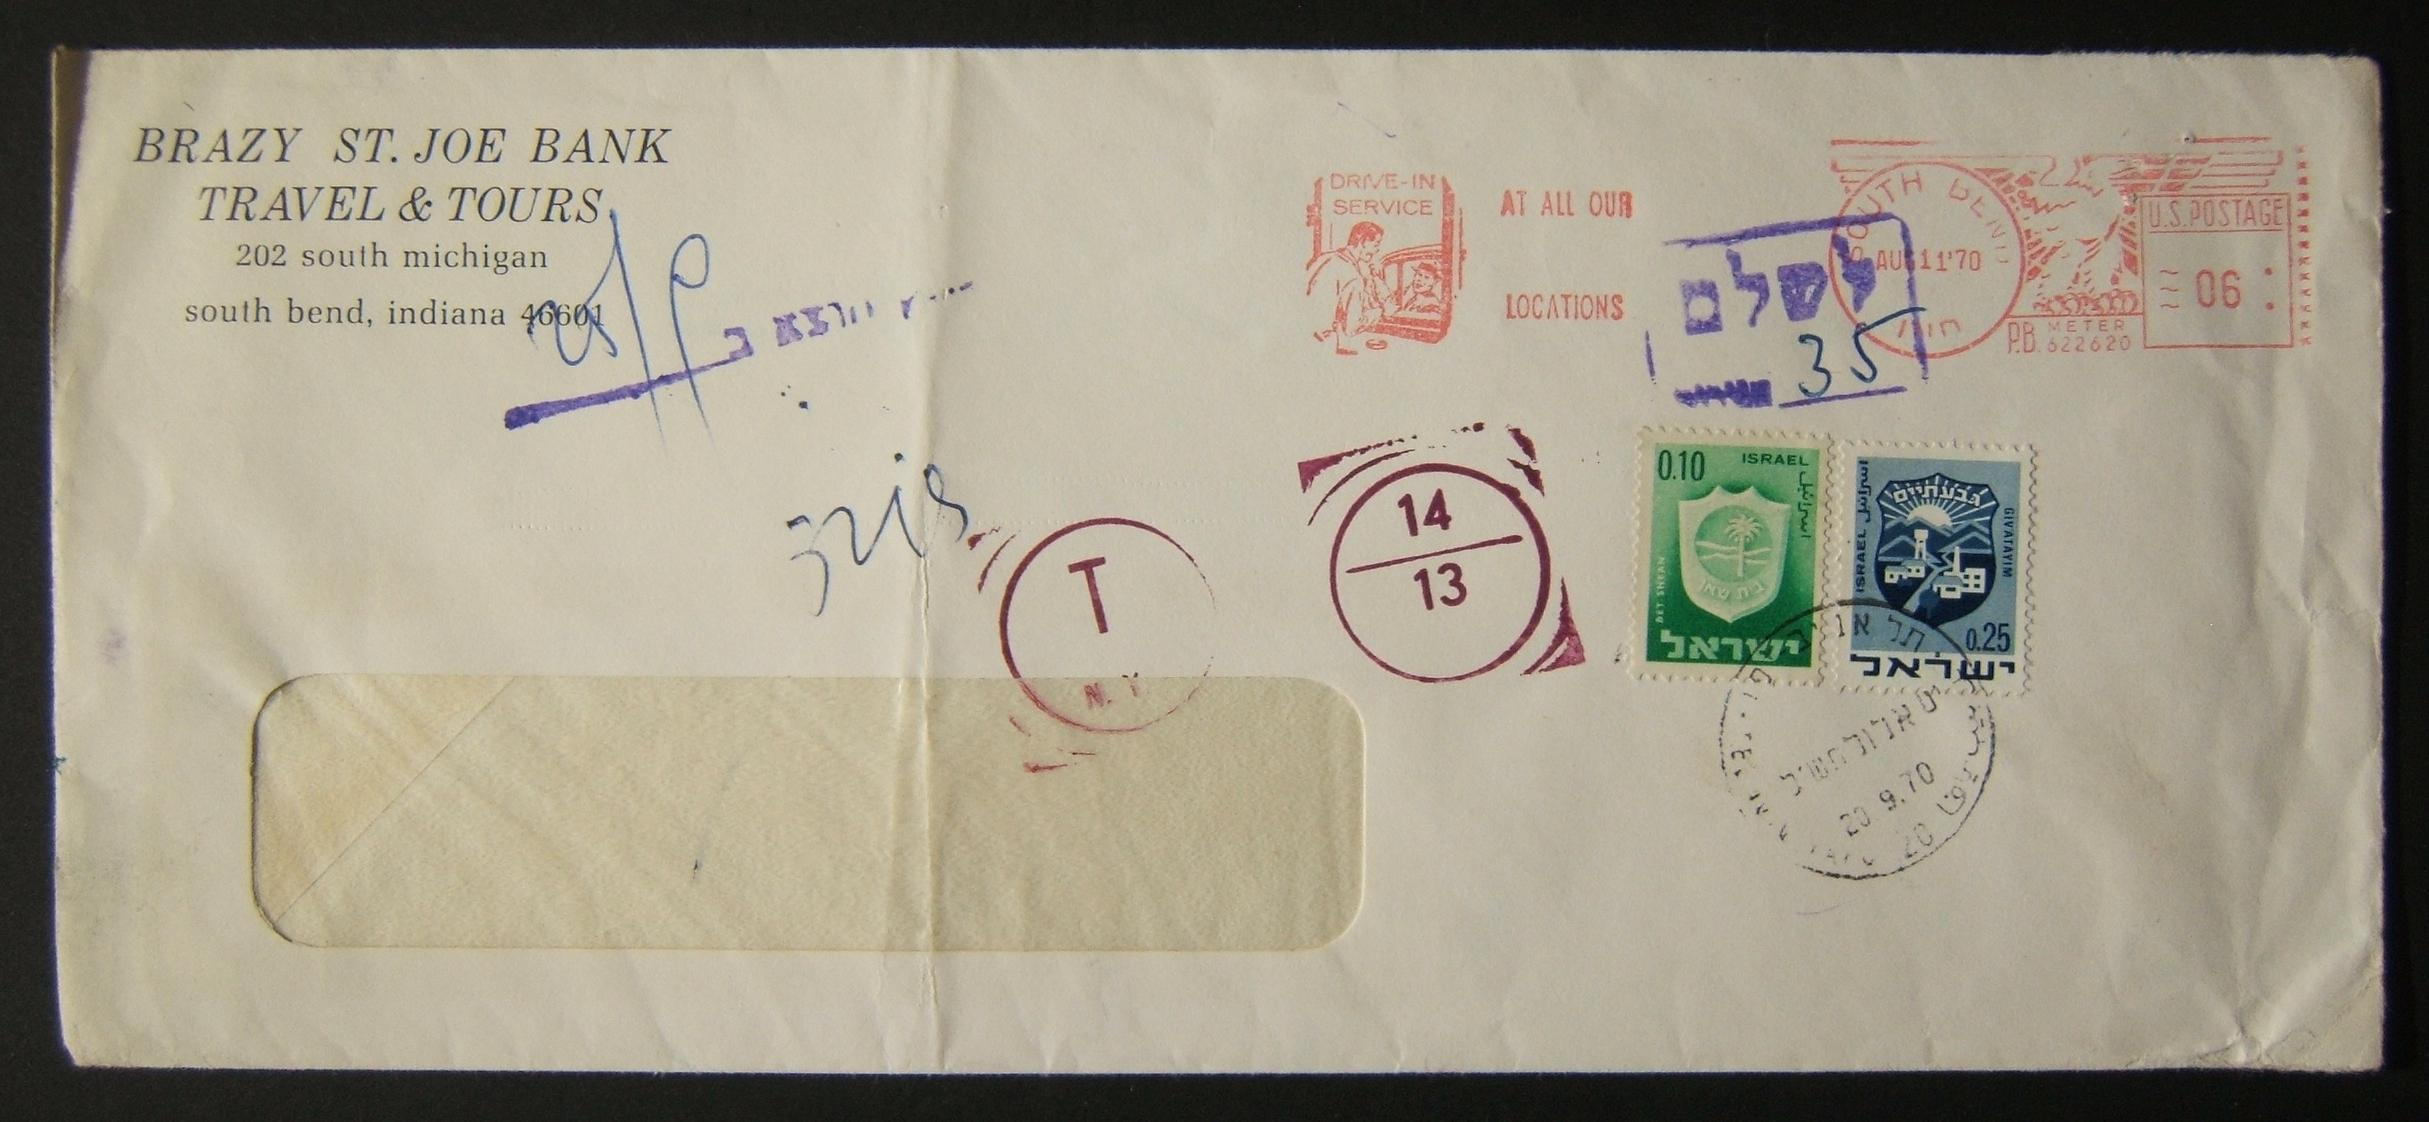 1970 incoming US taxed mail: AUG 11 '70 surface mailed window commercial cover ex SOUTH BEND to TLV underfranked at $0.06 and taxed 0.35L in Israel, paid 20-9-70 using 0.10L 1965/6